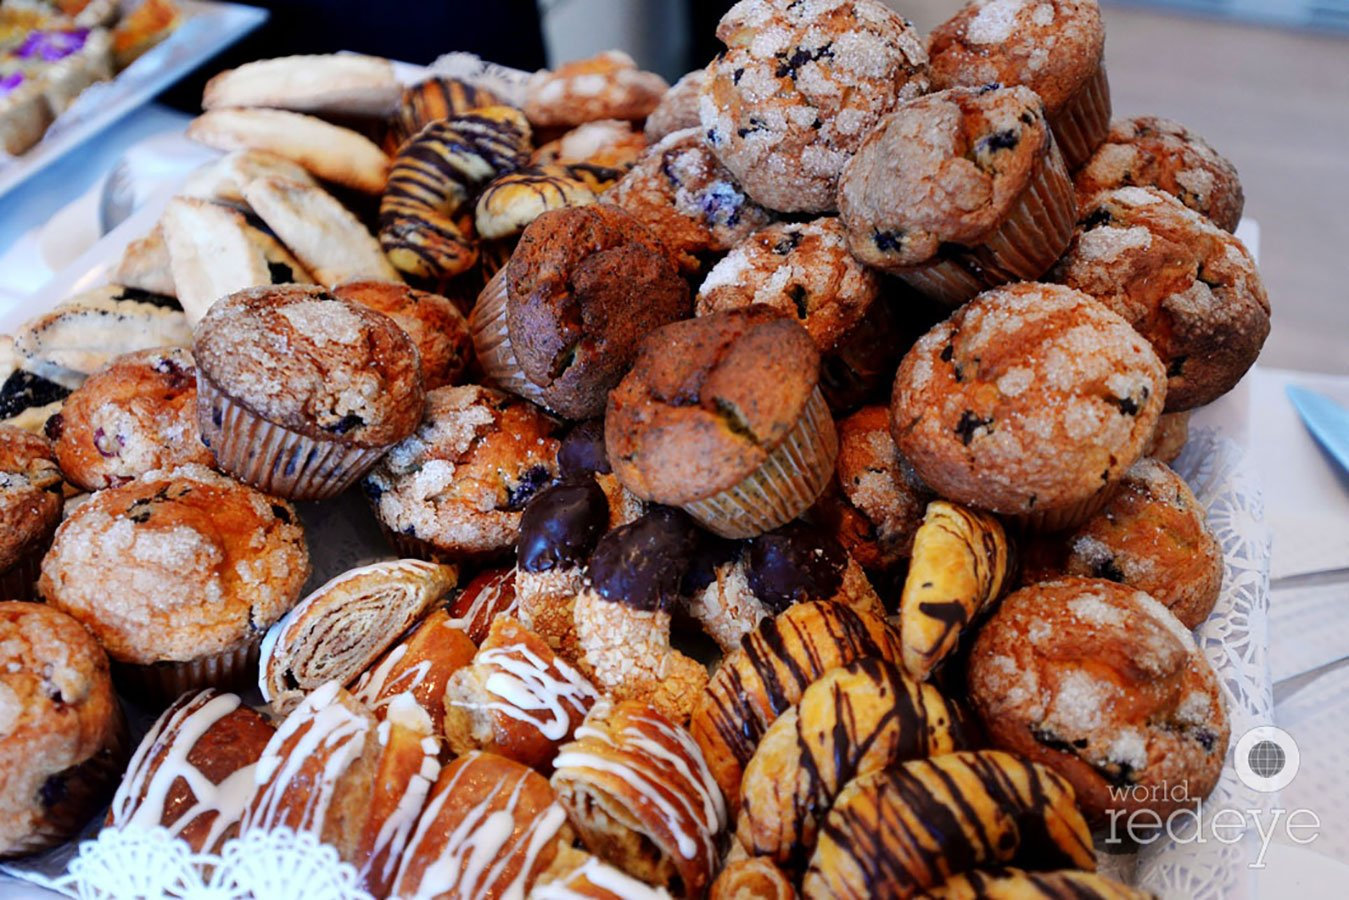 Pastries at Ritz Carlton Miami Beach Brunch for Sotheby's